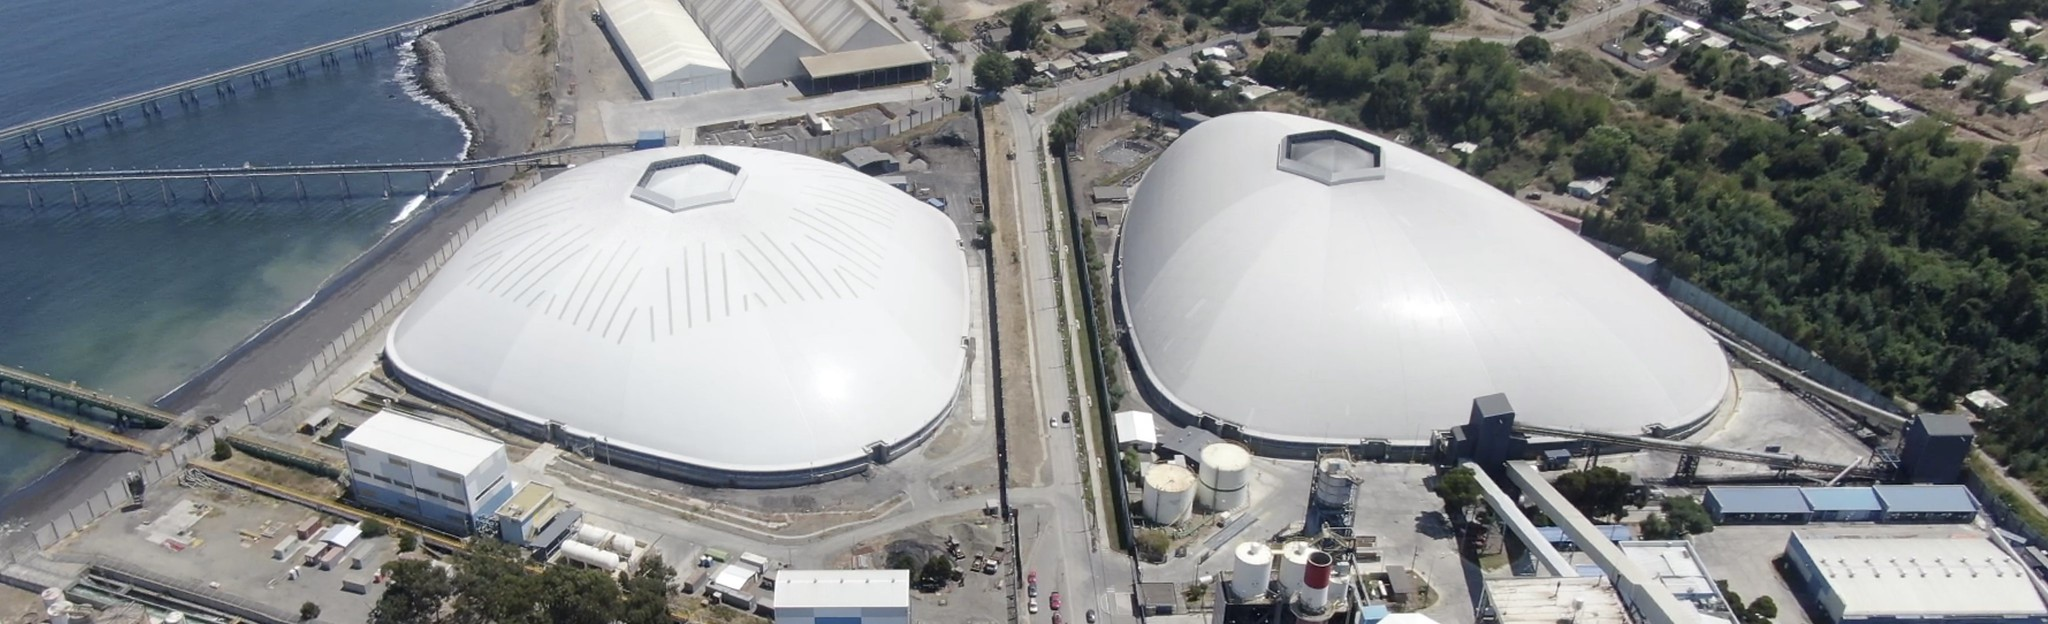 Two free-form domes to cover coal stockpiles in Bocamina, Chile.